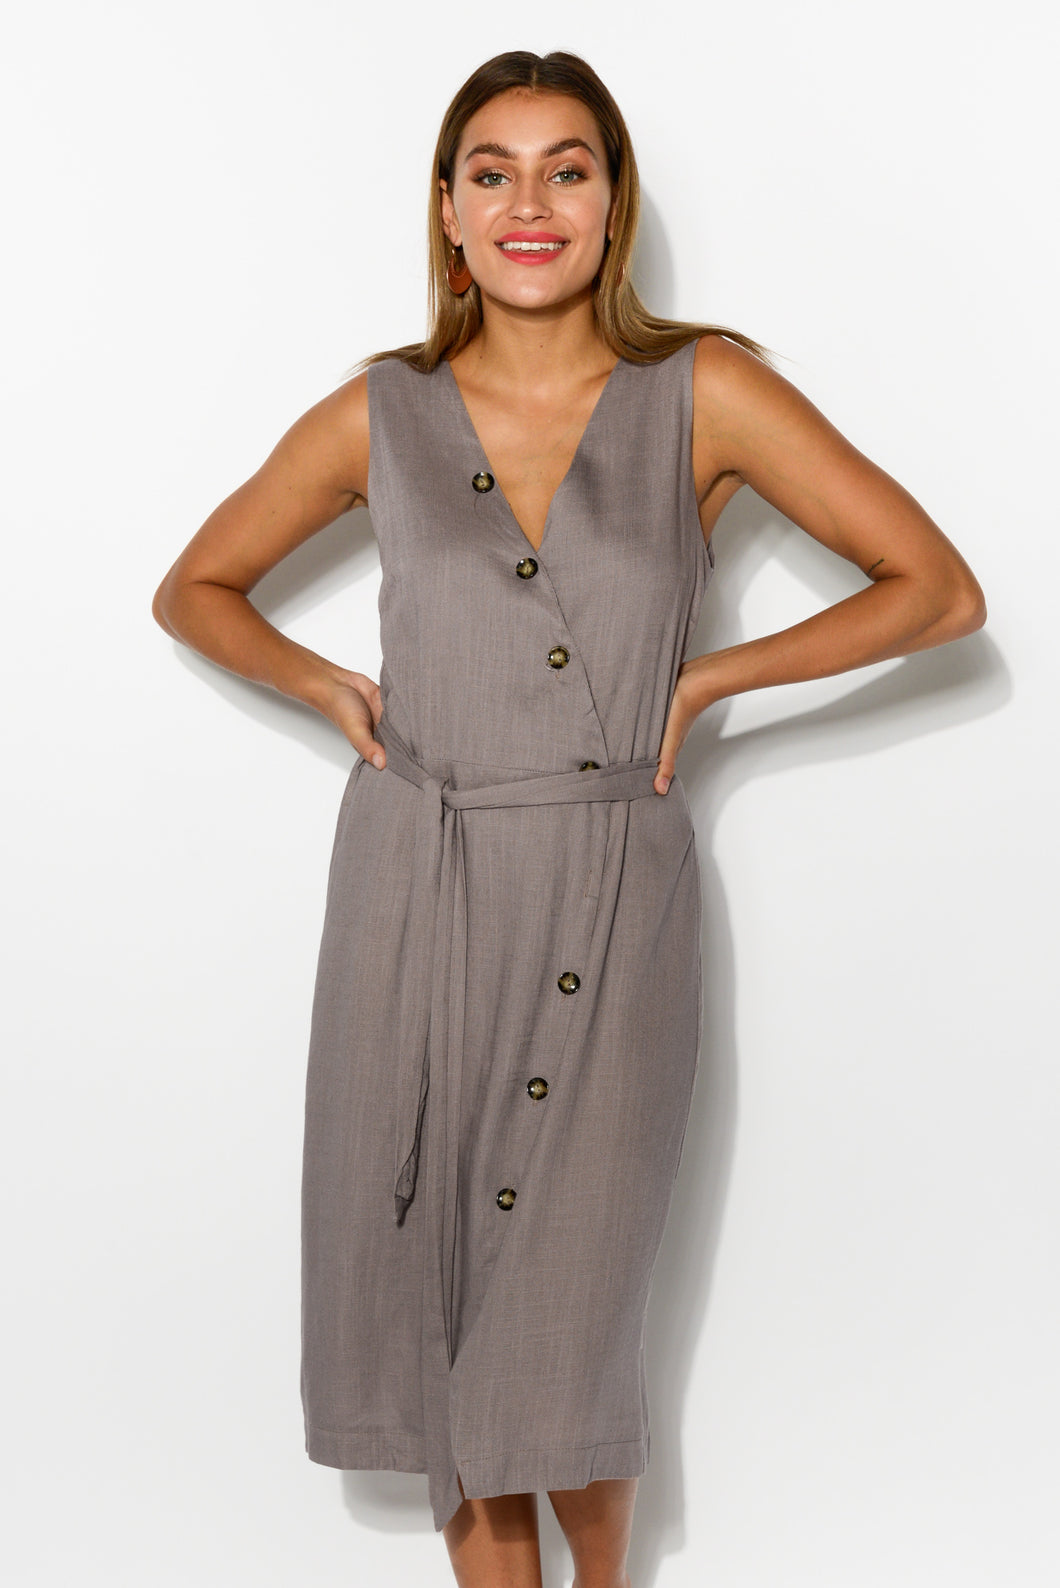 Tinley Grey Linen Cotton Wrap Dress - Blue Bungalow